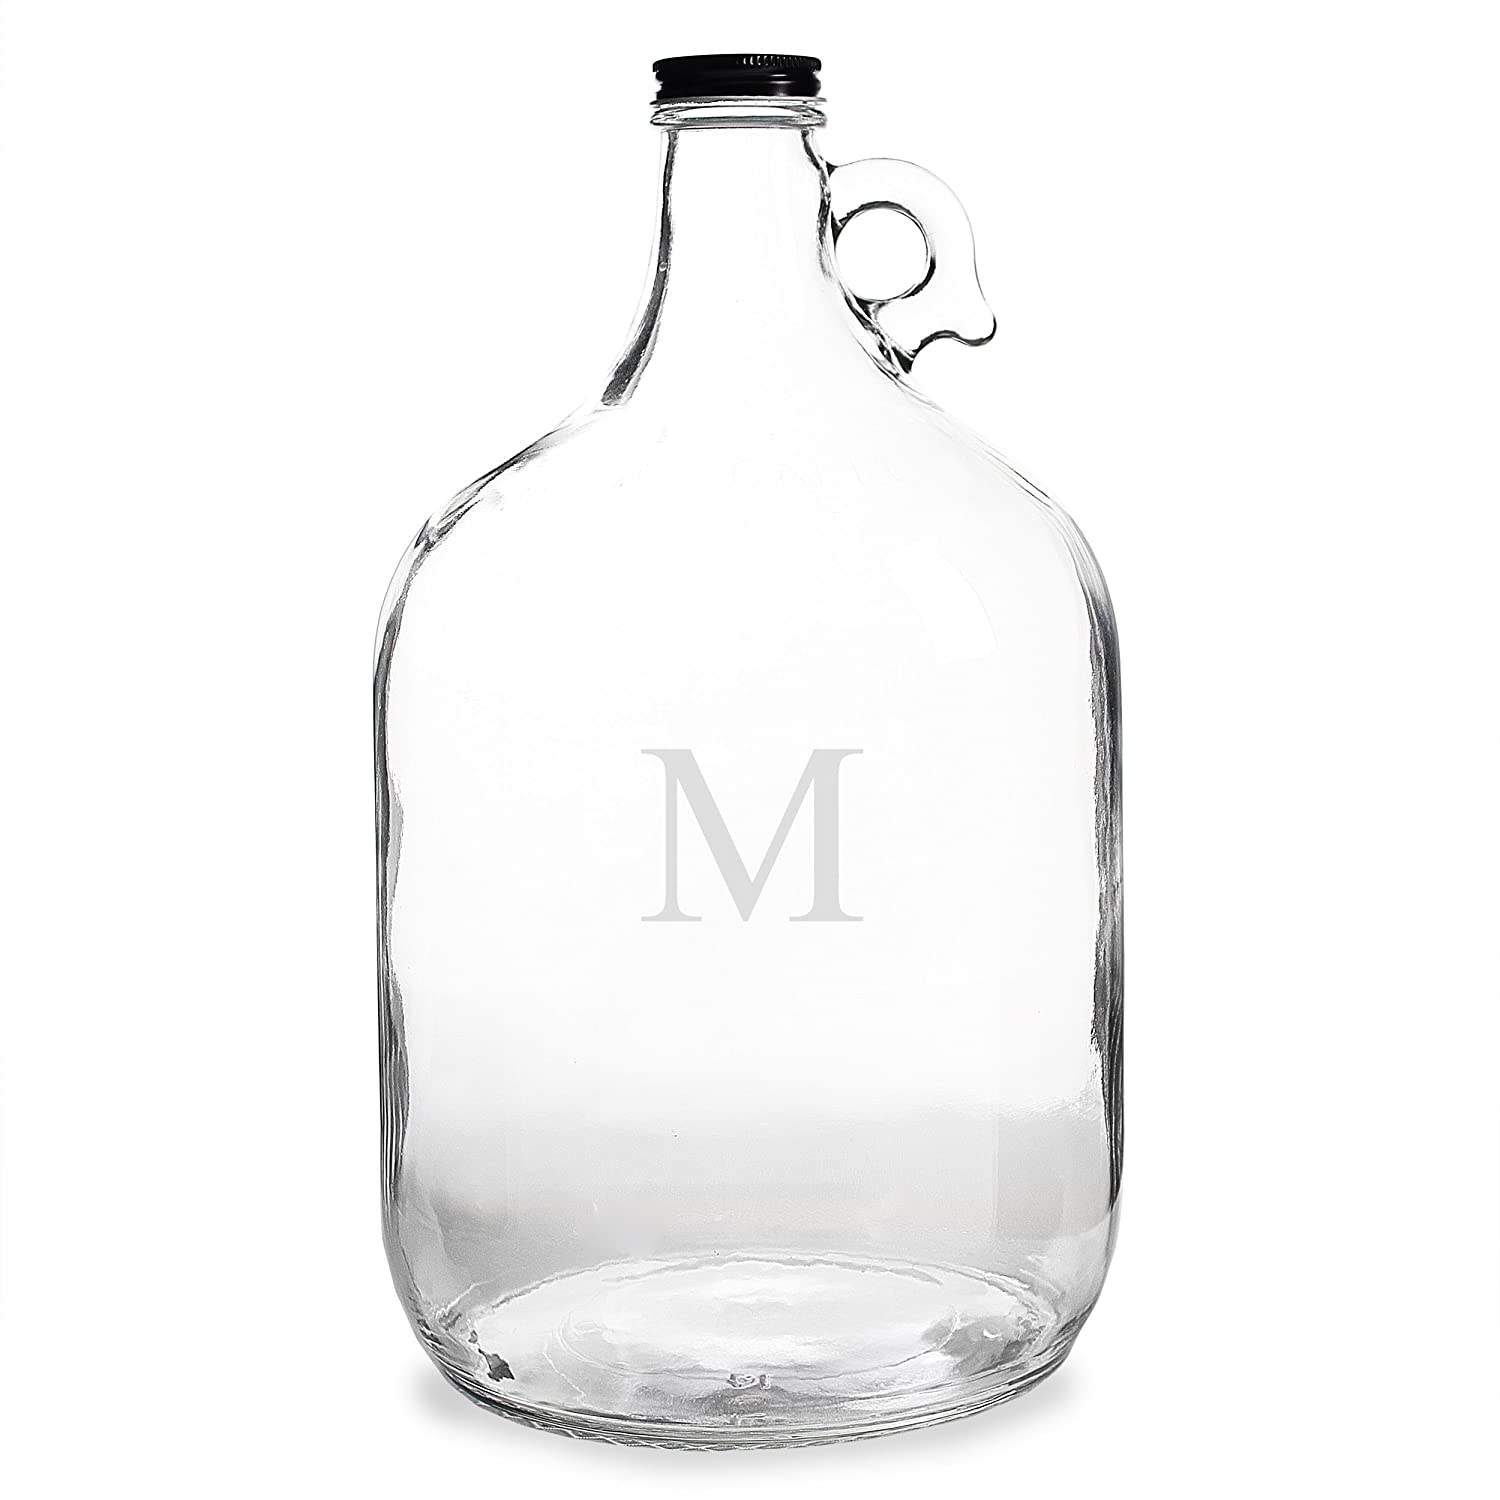 Cathy's Concepts Personalized One Gallon Growler, Letter A Cathys Concepts 2210-A